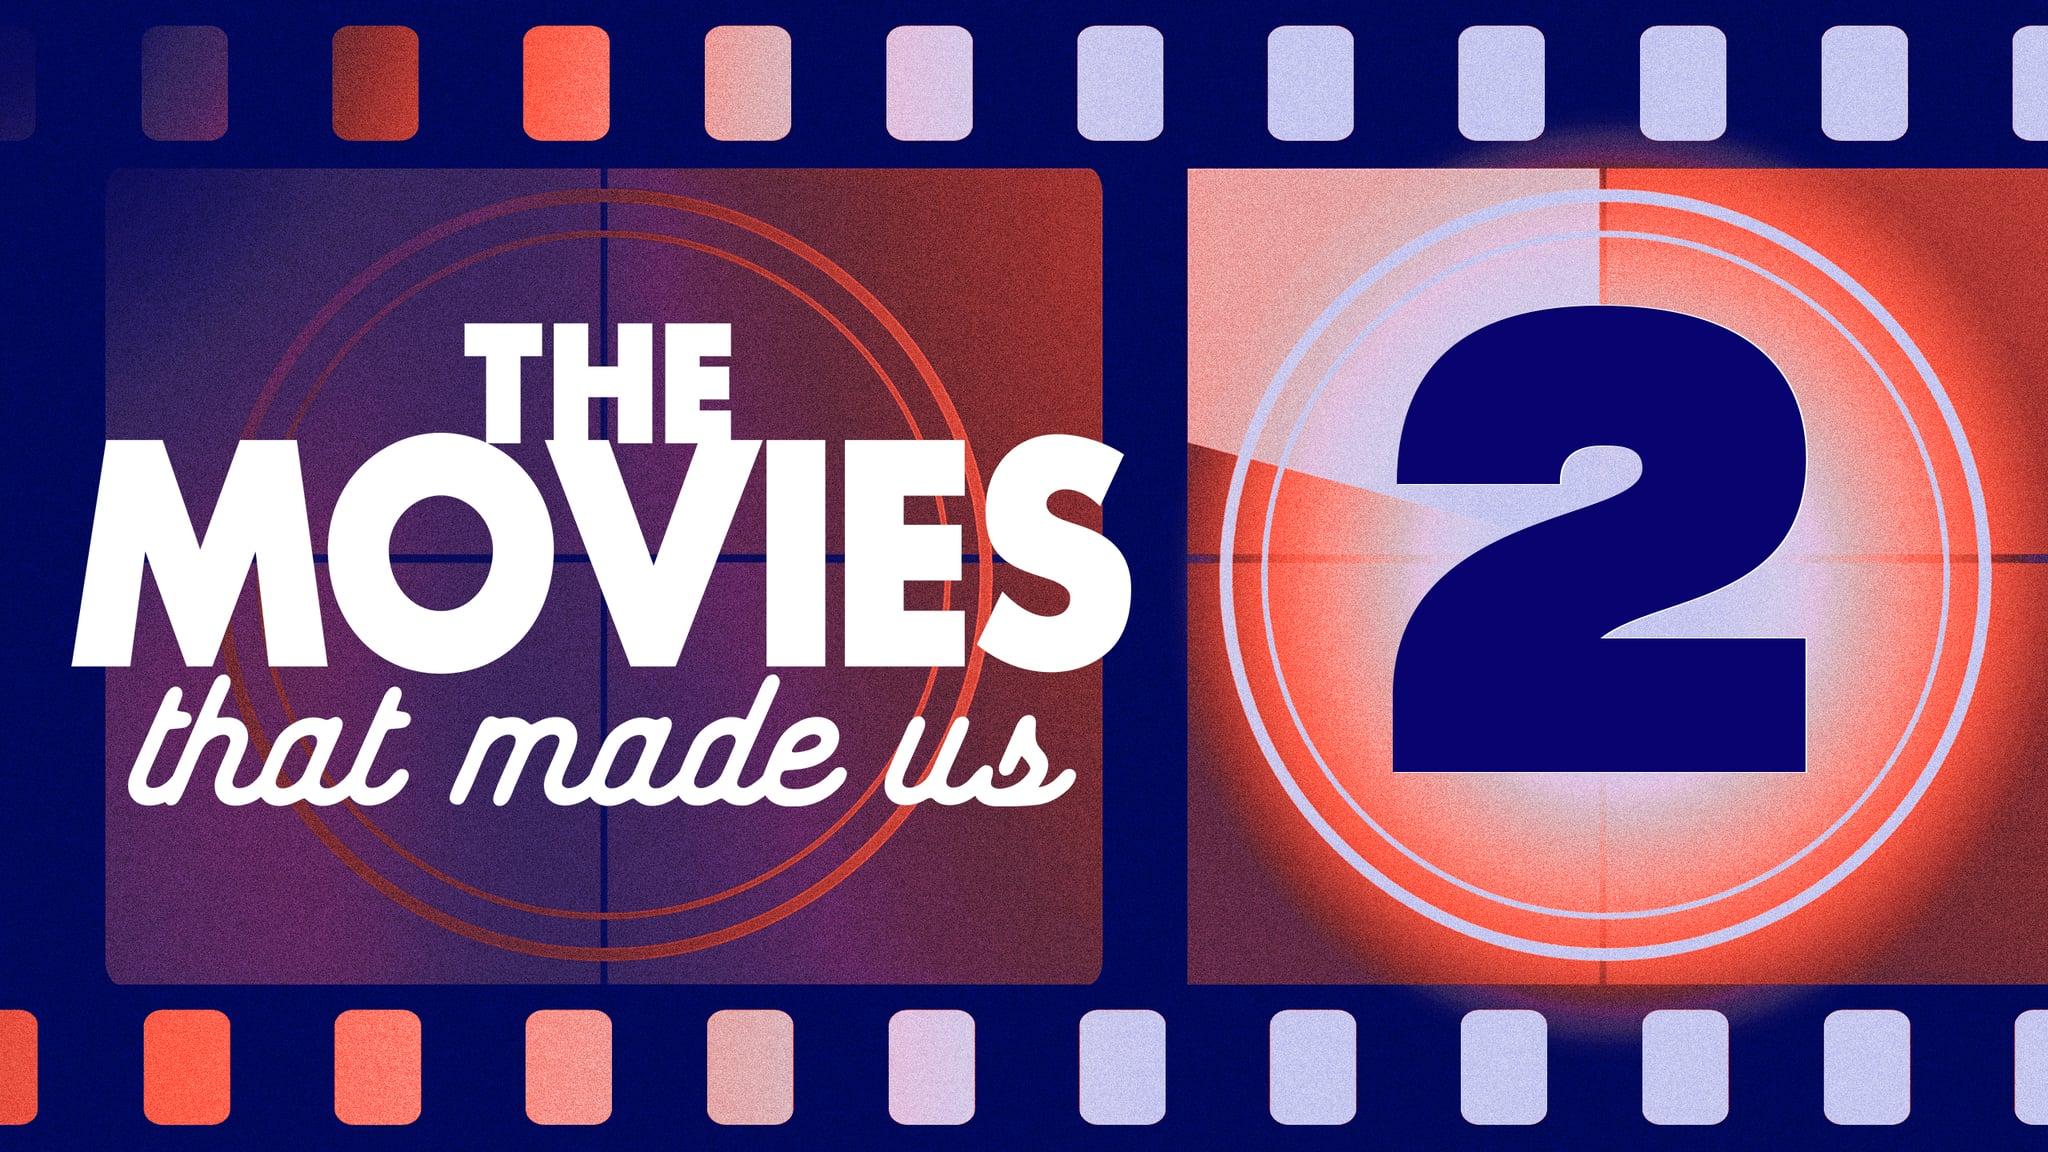 The Movies that made us 2